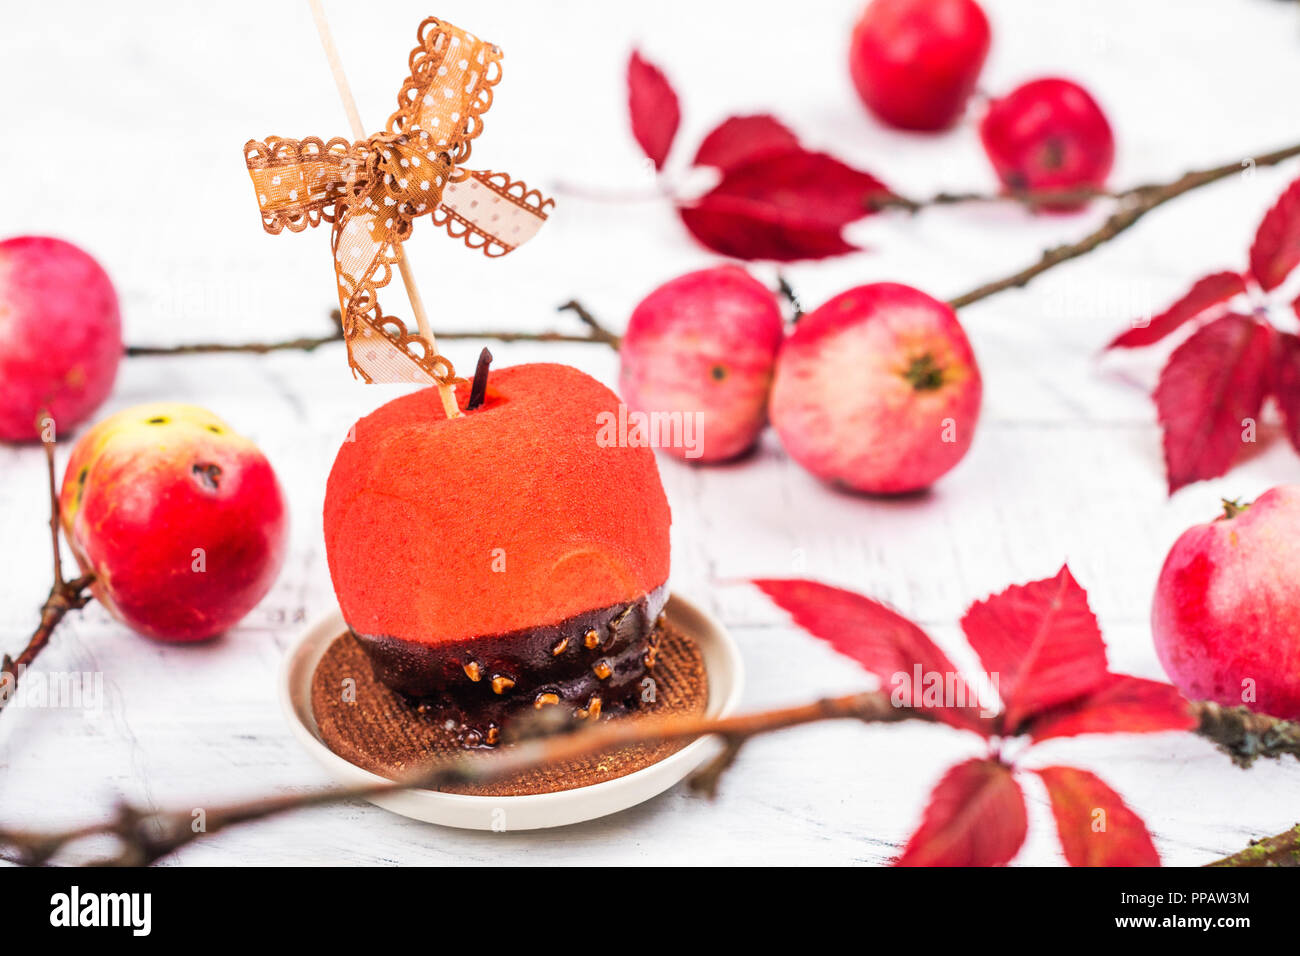 Toffy Stock Photos Images Alamy Petite Cupcakes Aumy Outer Halloween Candy Apple Dessert Image